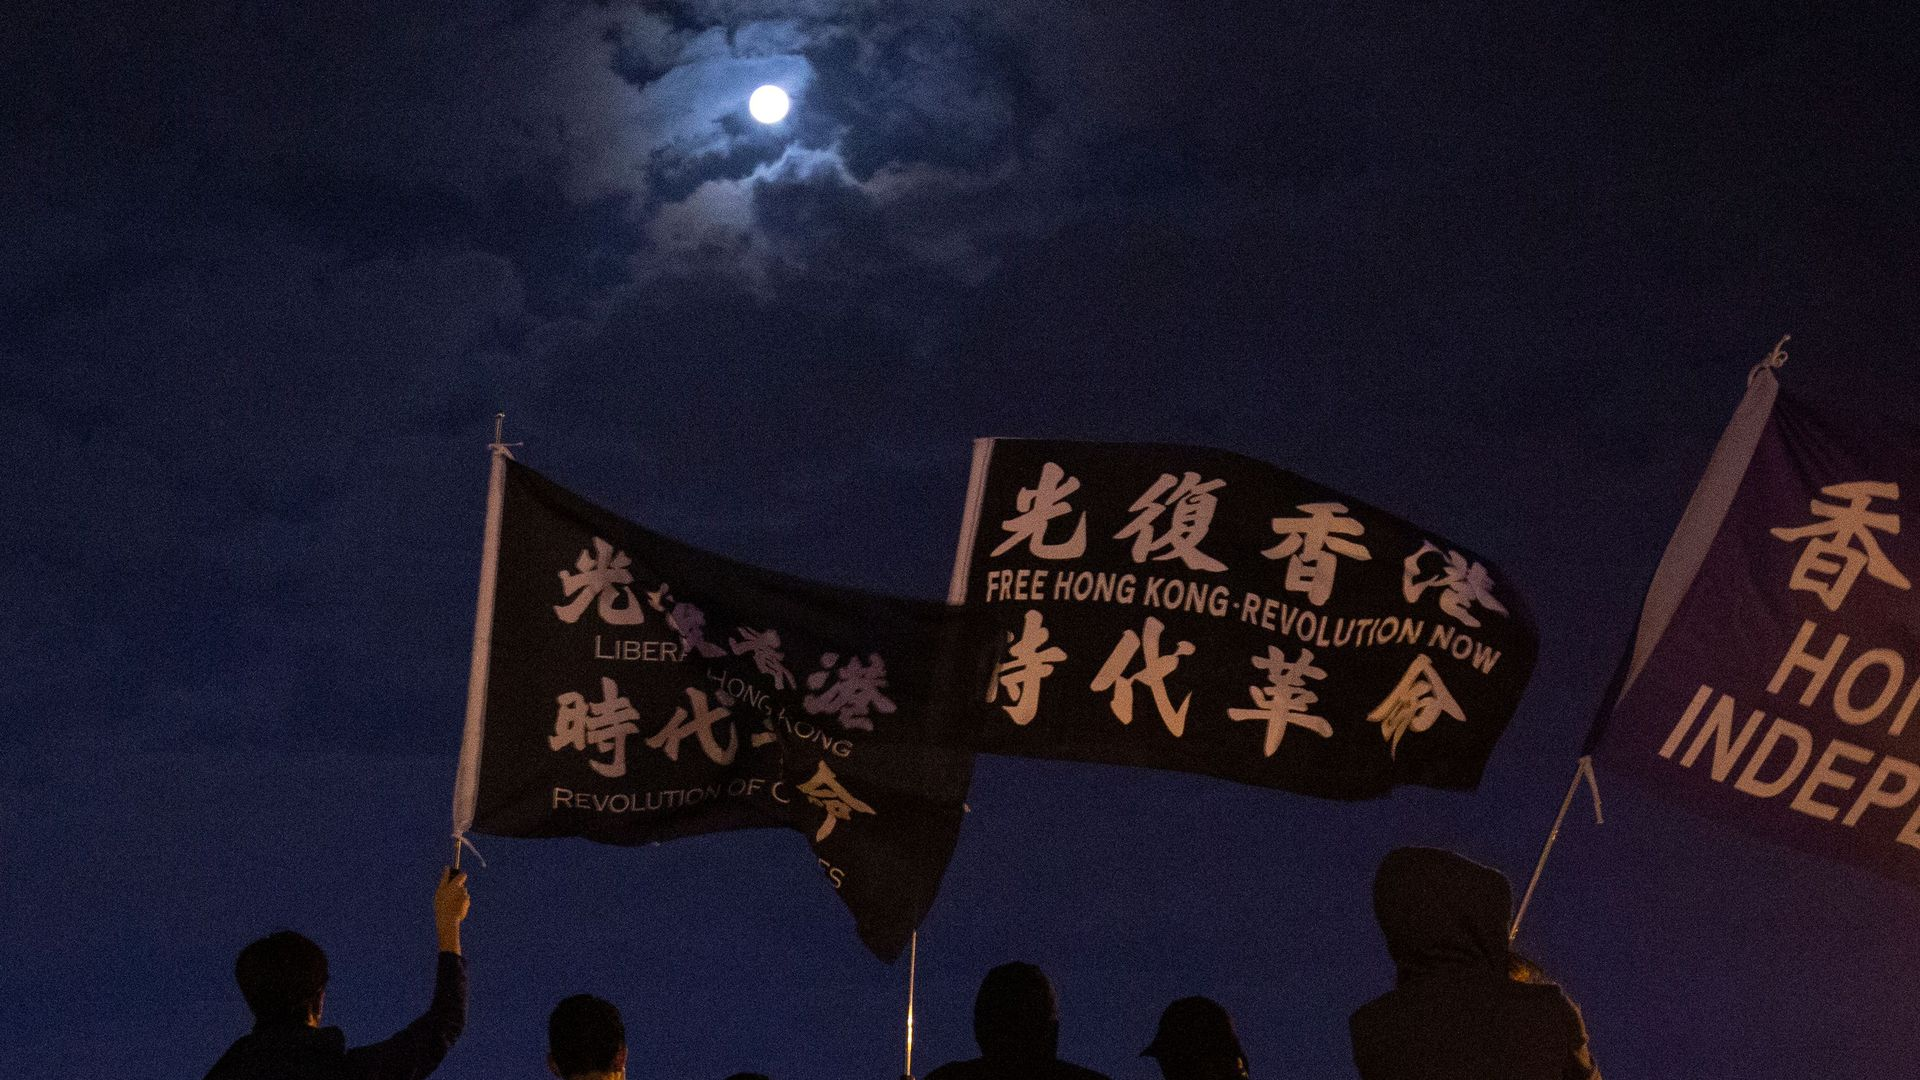 This photo taken on December 12, 2019 shows protesters waving black flags